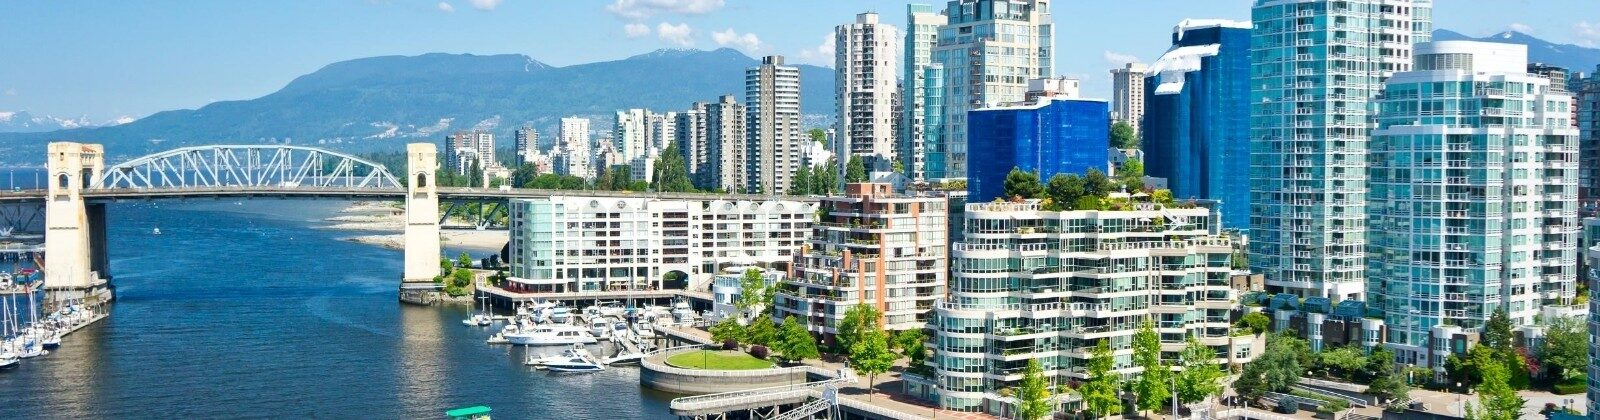 downtown vancouver west coast canada